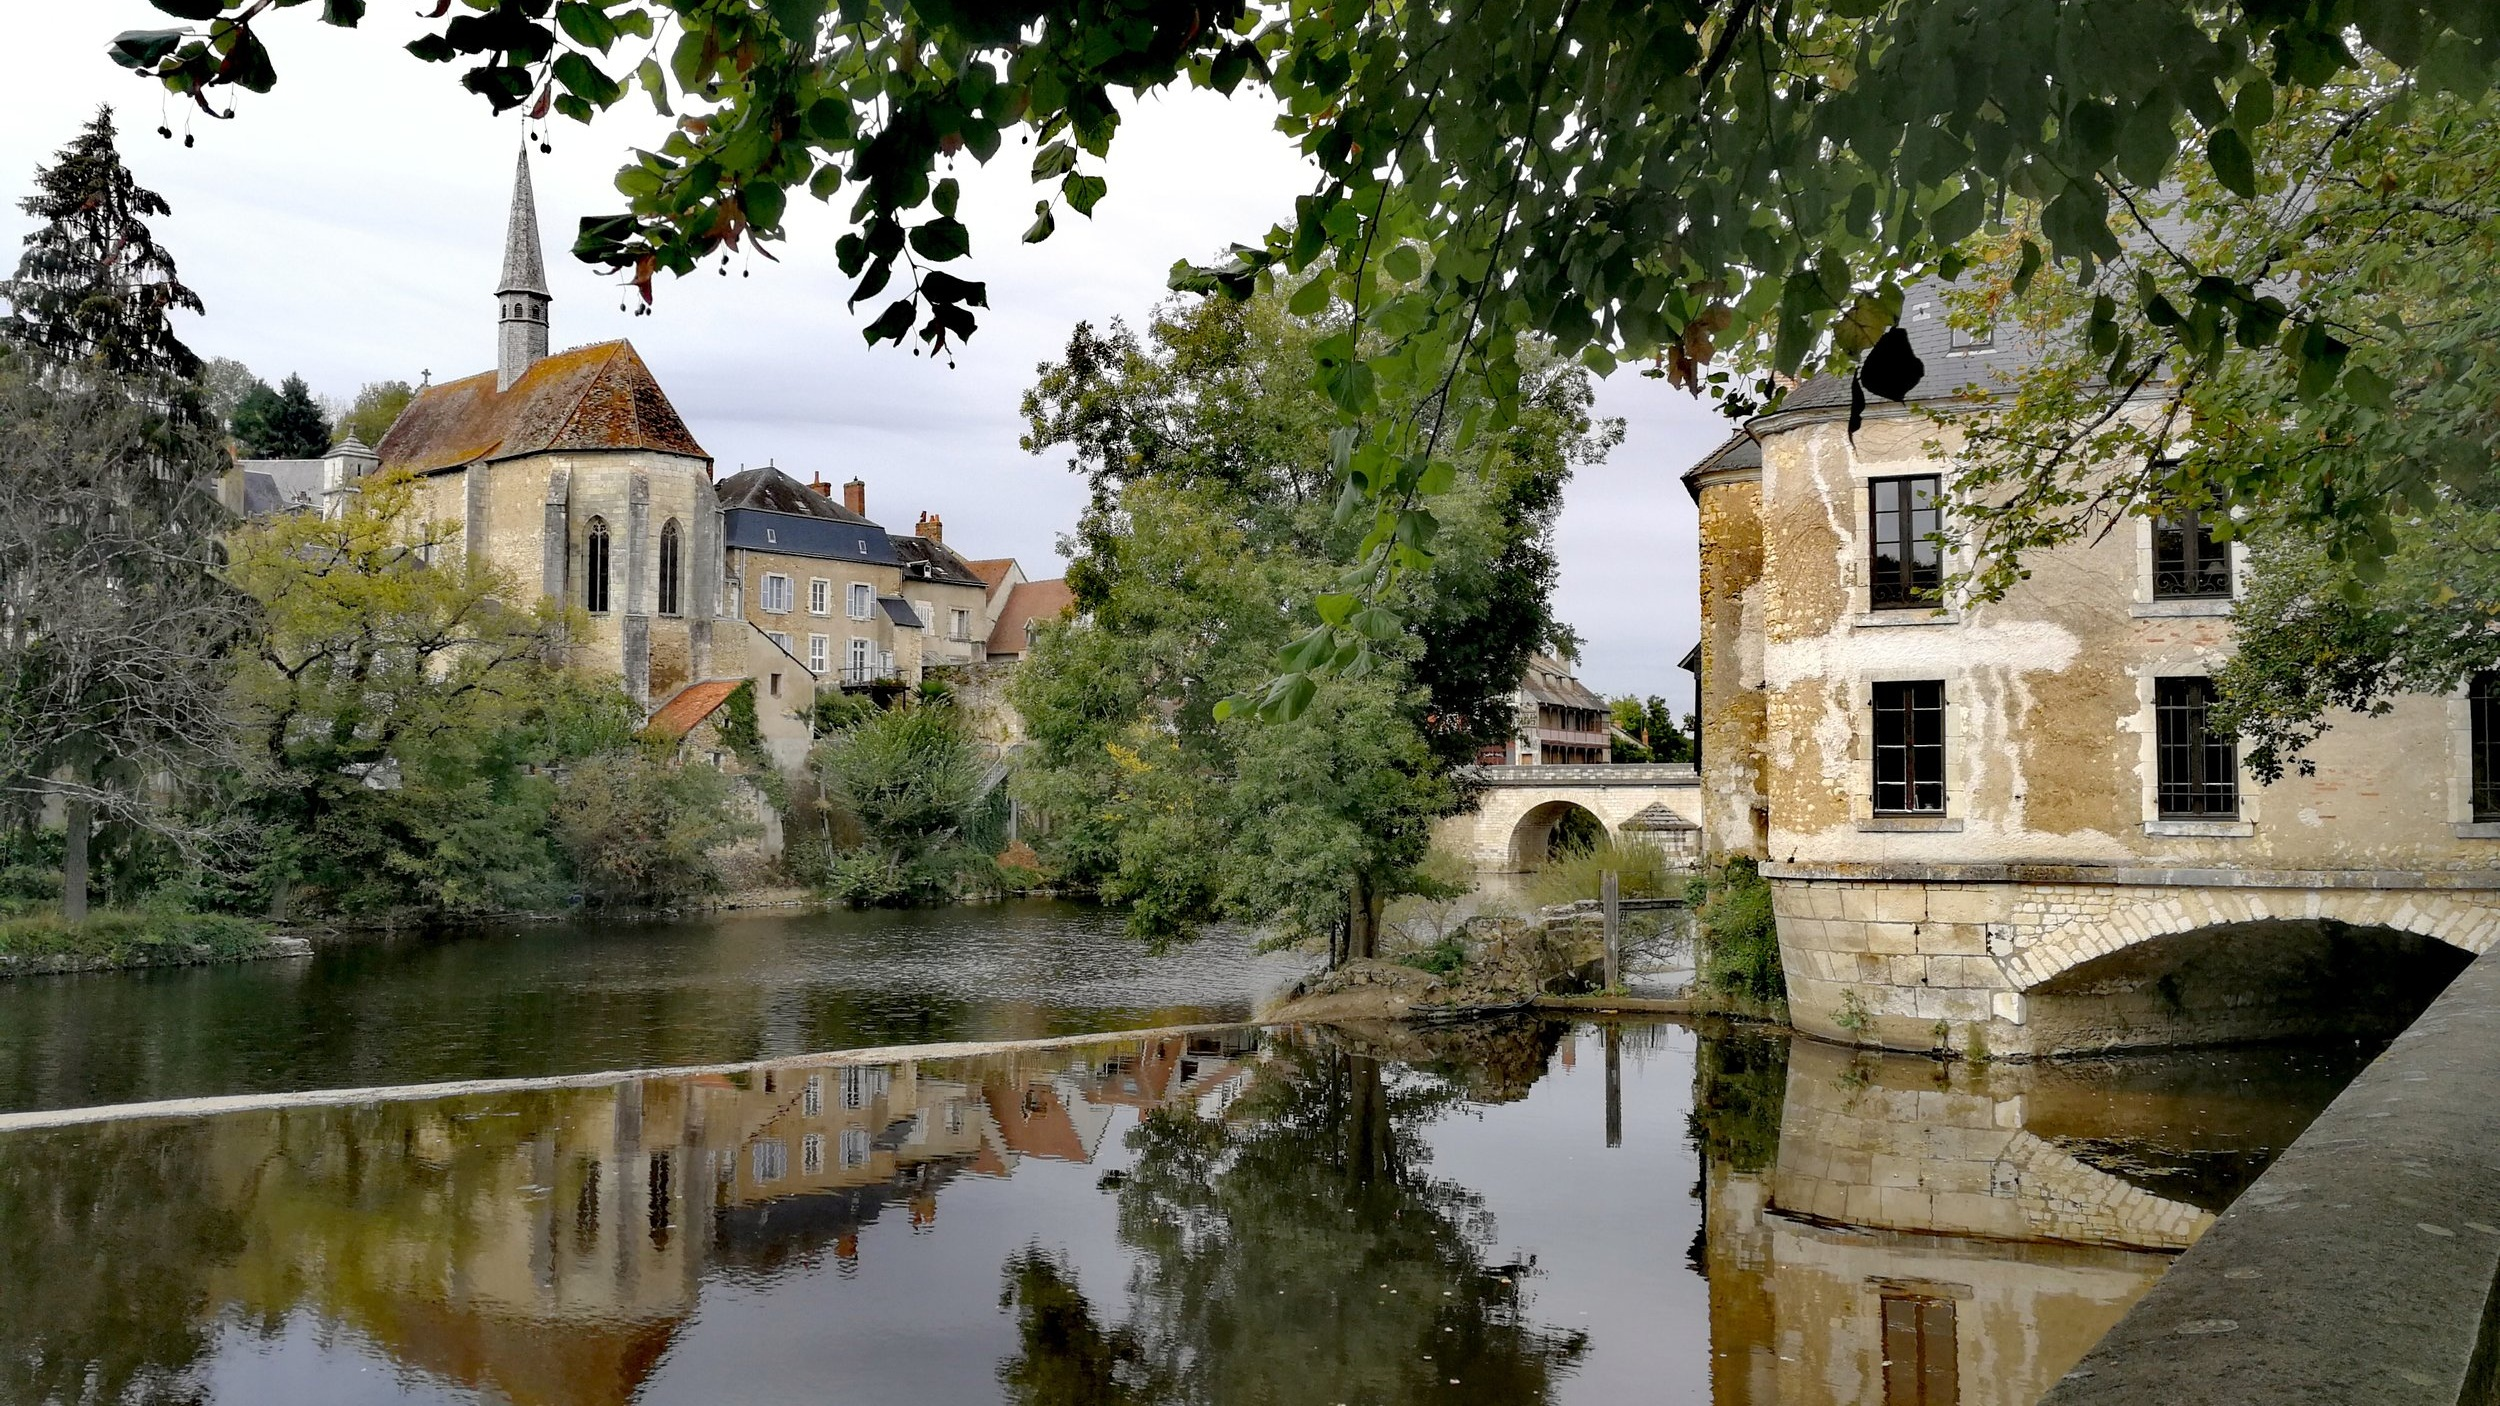 Argenton-sur-Creuse - A village in the heart of FranceOur centre is located in the heart of the city of Argenton-sur-Creuse (36). We work in partnership with local merchants, craftsmen and hoteliers. The centre offers language immersion stays (in French and English).A typical day consists of language workshops in the morning, run by a local guide.The language you learn there will help you benefit fully from your afternoon's experience.